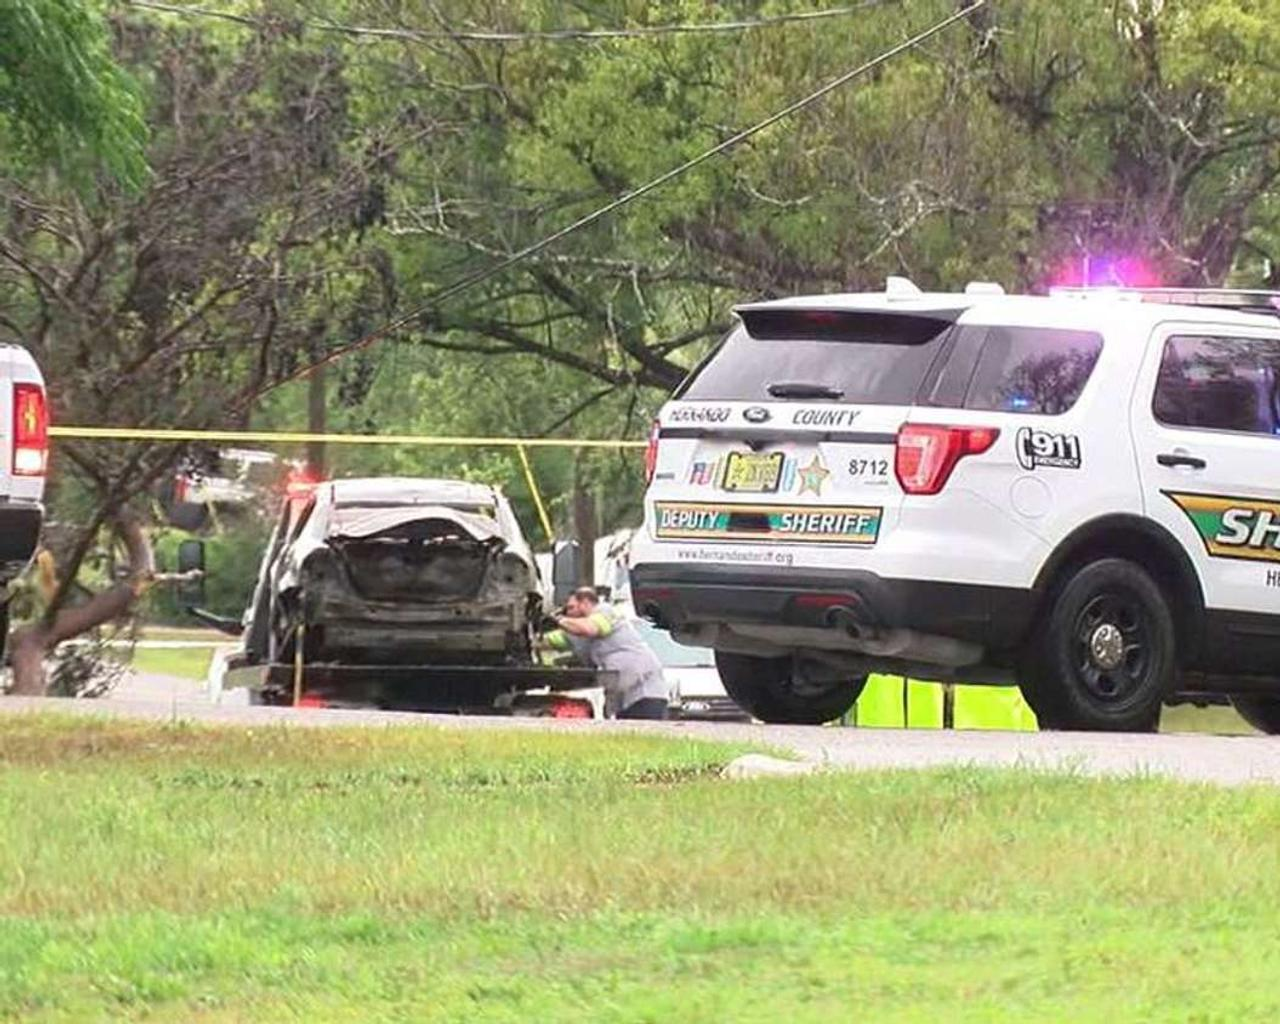 17-year-old Florida girl dies after being electrocuted by power line downed in storms